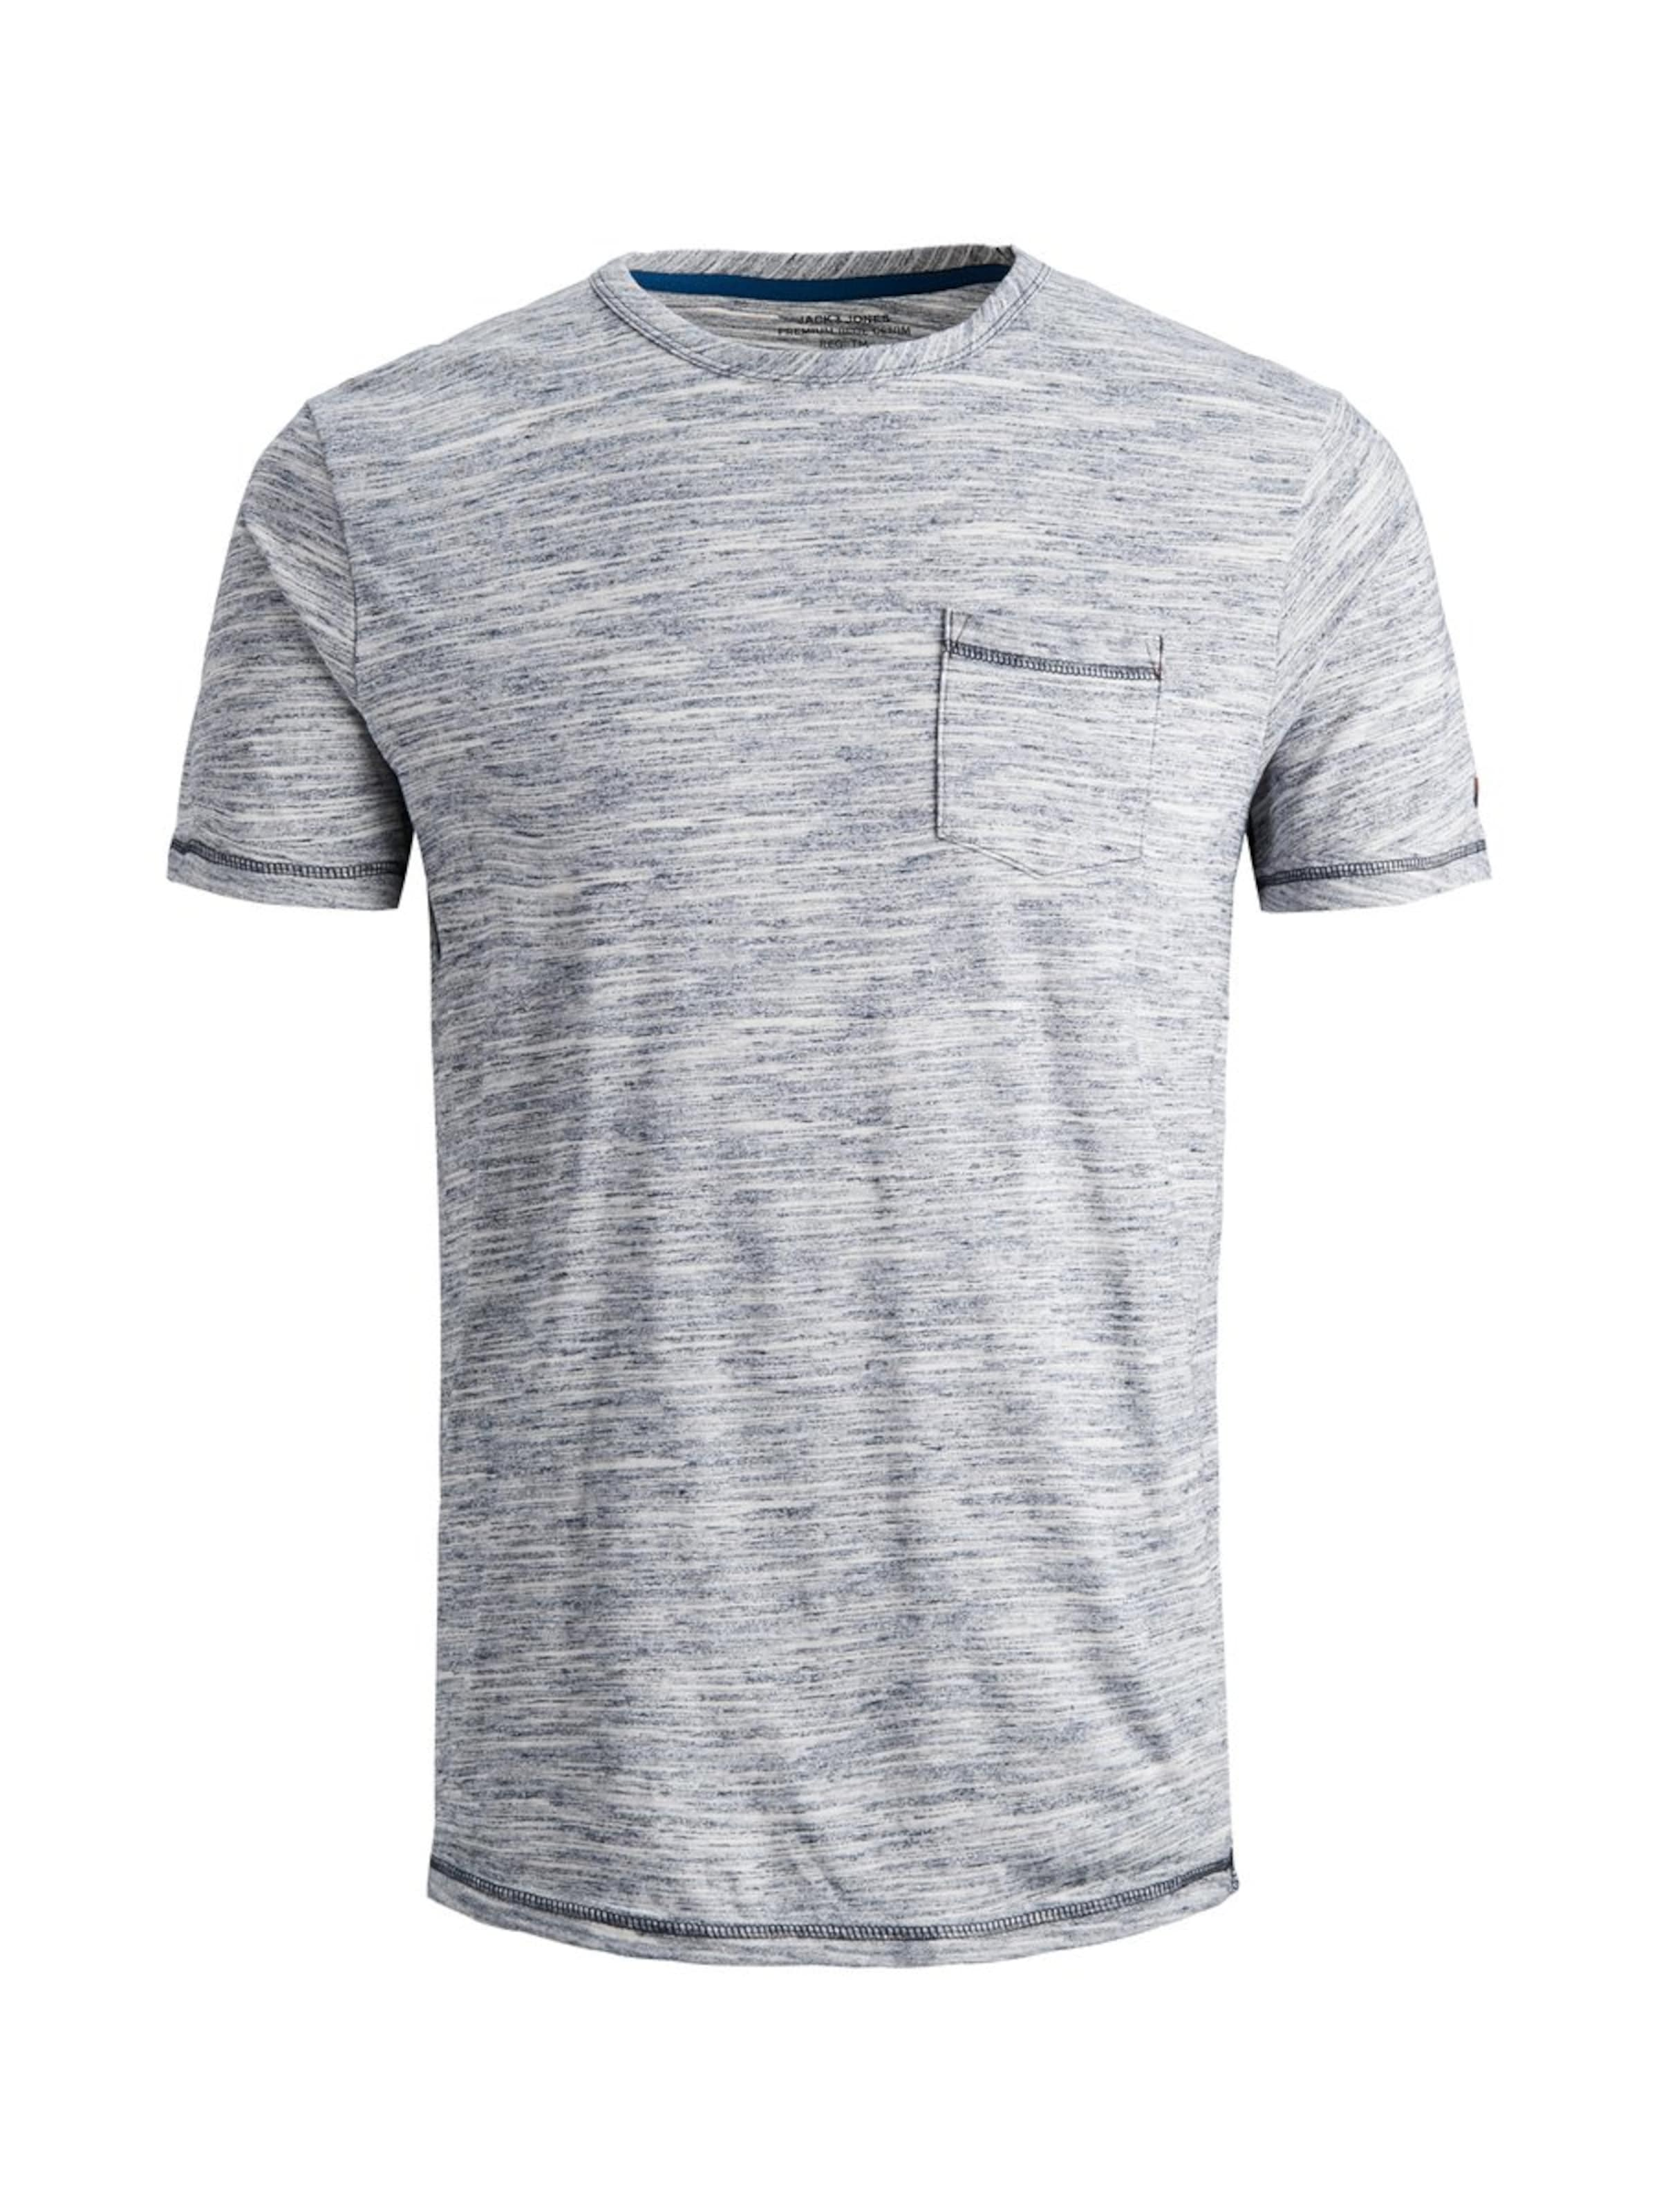 Jones Bleu shirt En Jackamp; gris T MVSzpqU